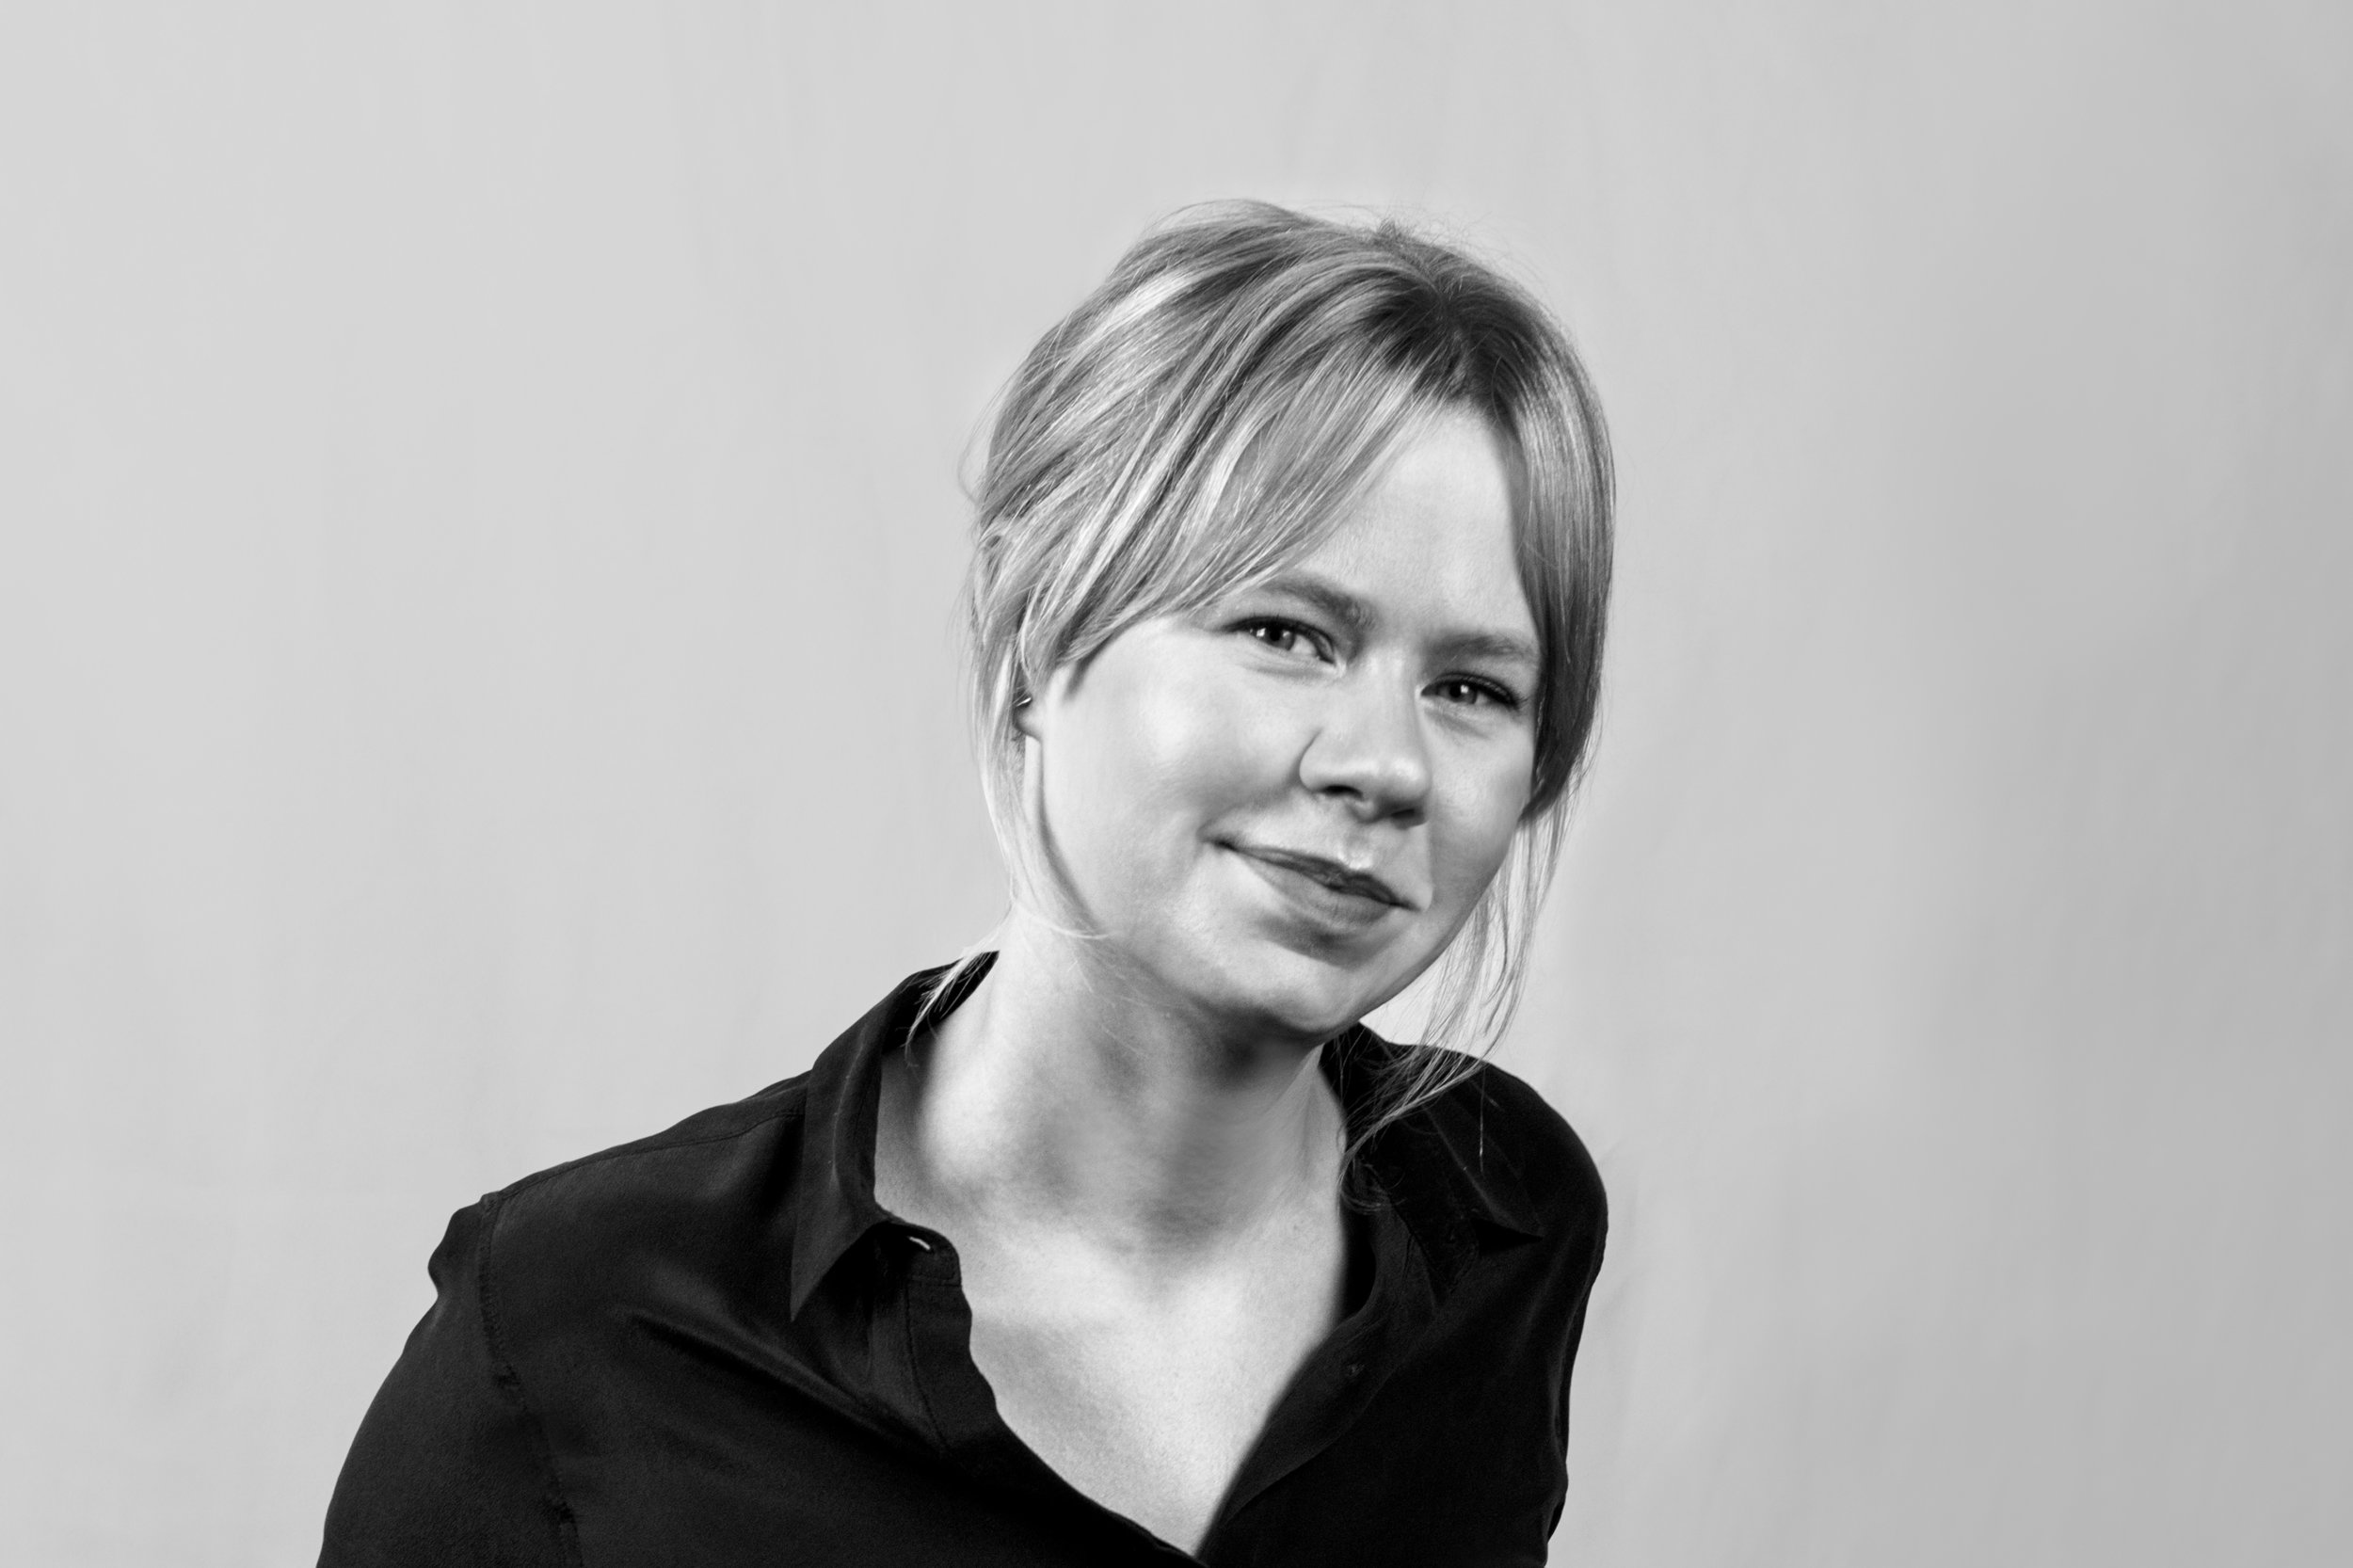 Black and white portrait of Lauren Race on a white background, wearing a black collared shirt.